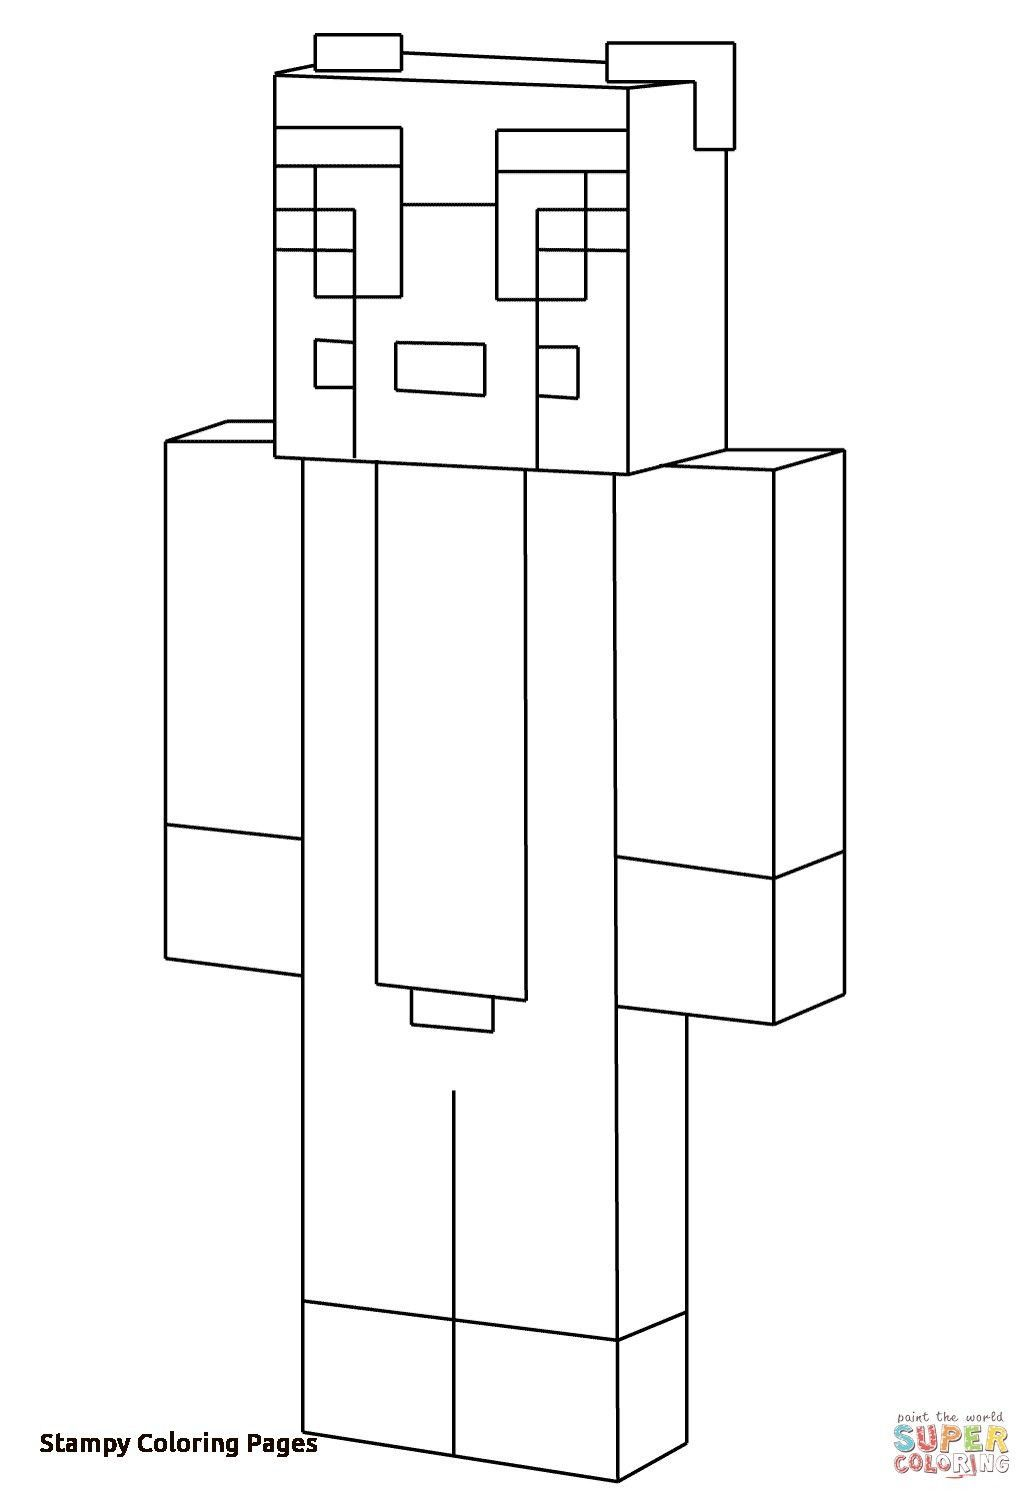 Stampy Cat Coloring Page Youngandtae Com In 2020 Minecraft Coloring Pages Cat Coloring Page Minecraft Stampy